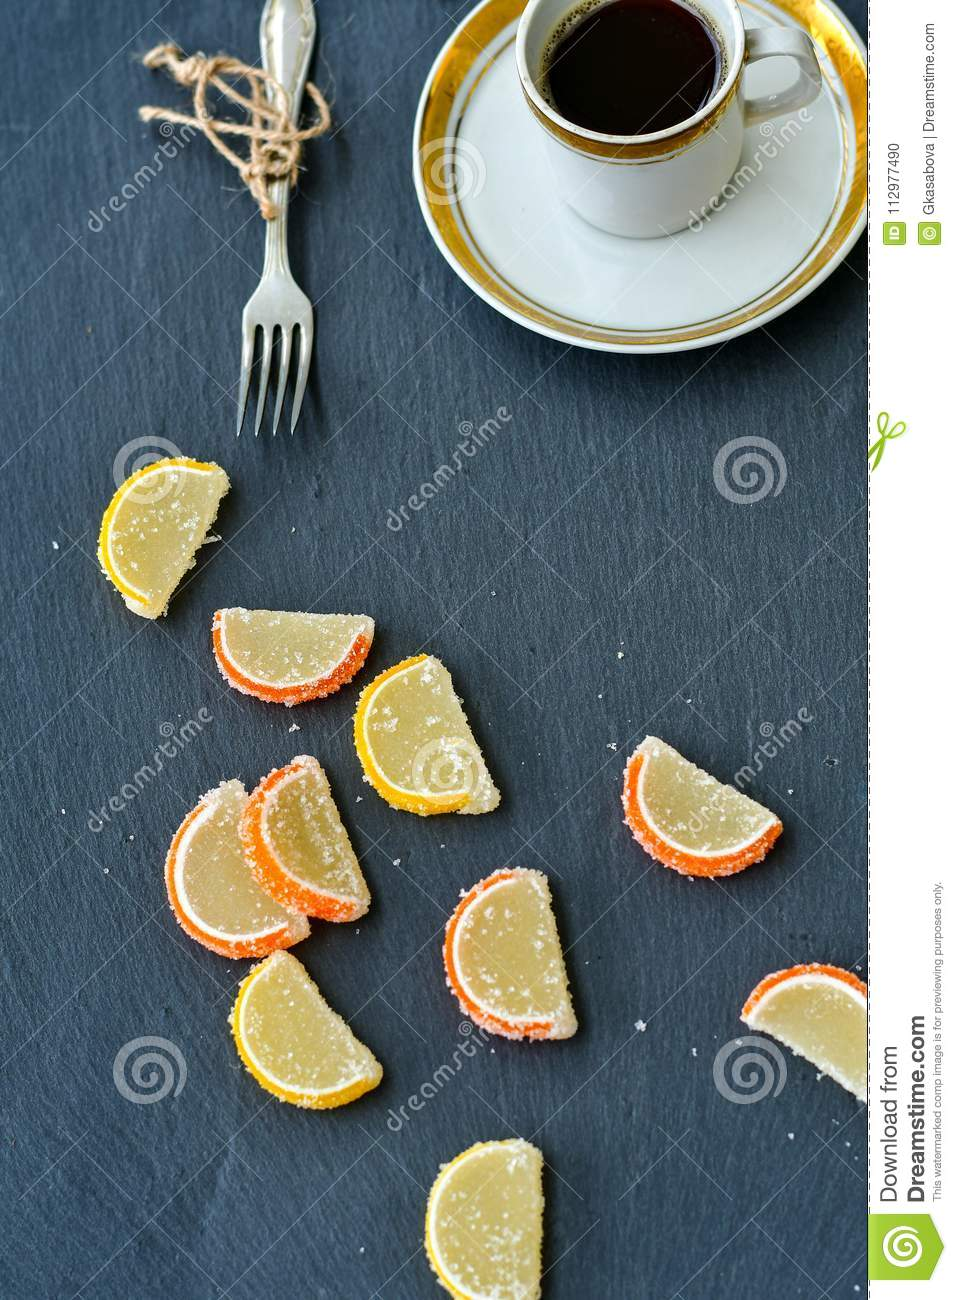 Cup of coffee and lemon slices